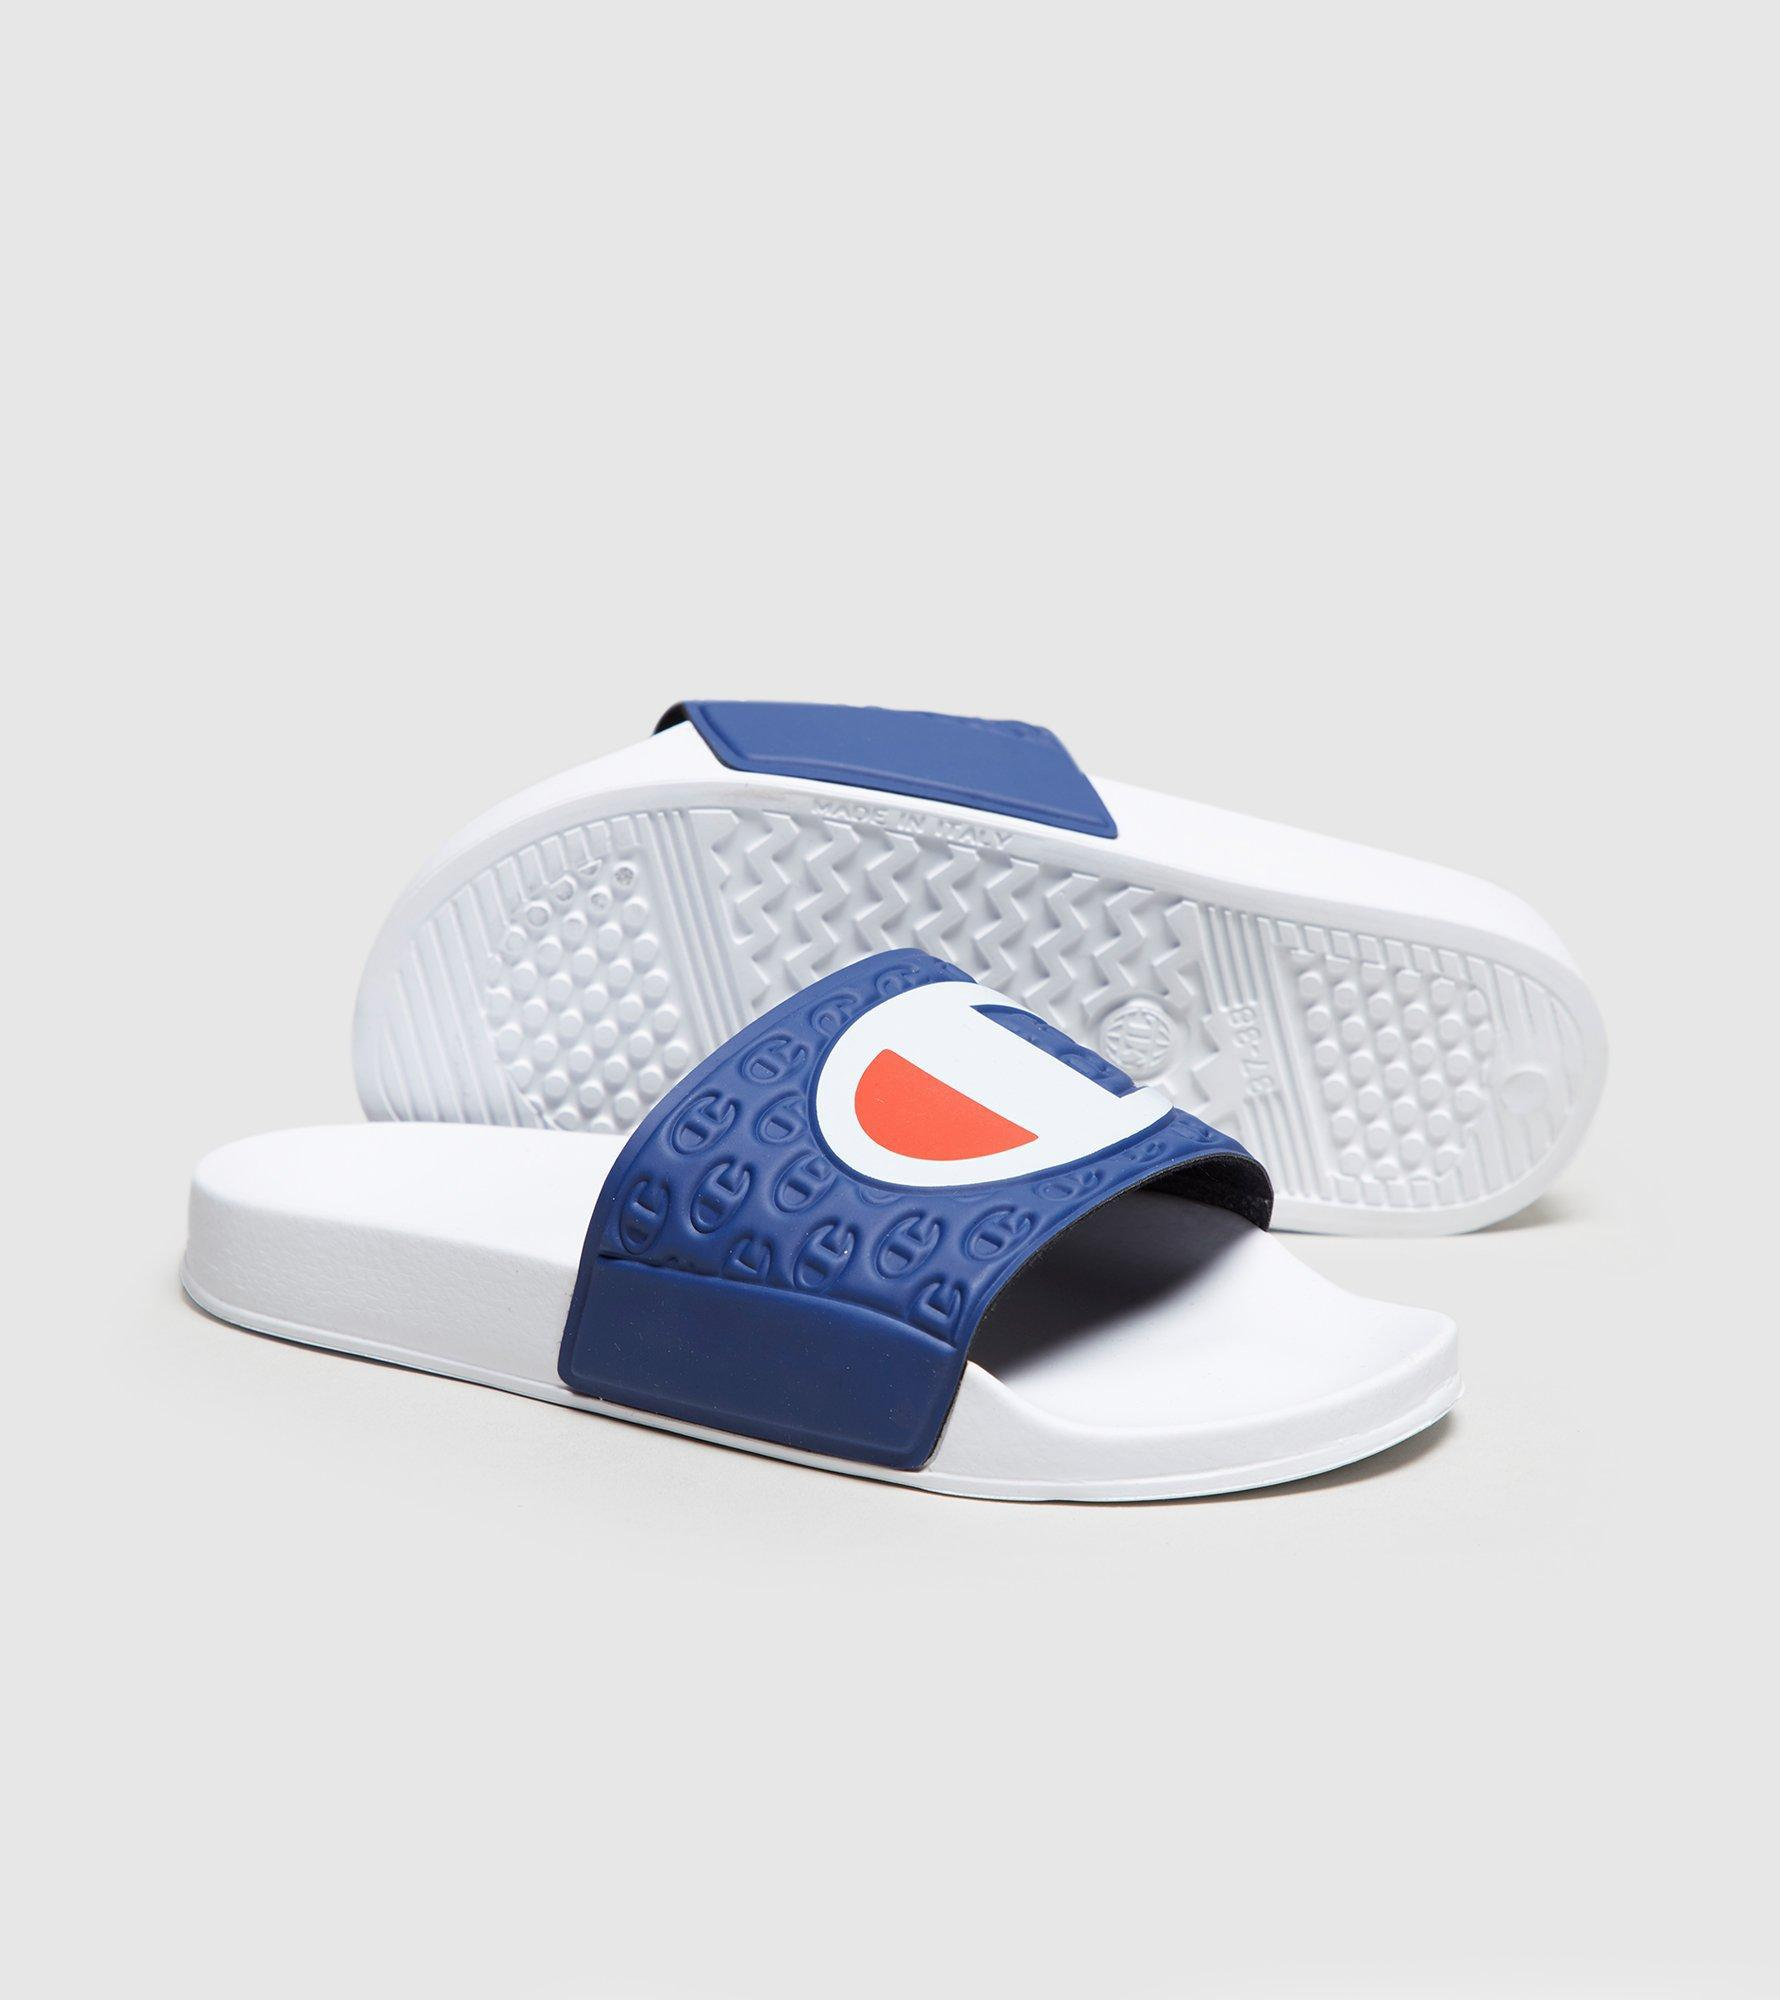 425684f4d3d9bc Lyst - Champion Slides Women s in Blue